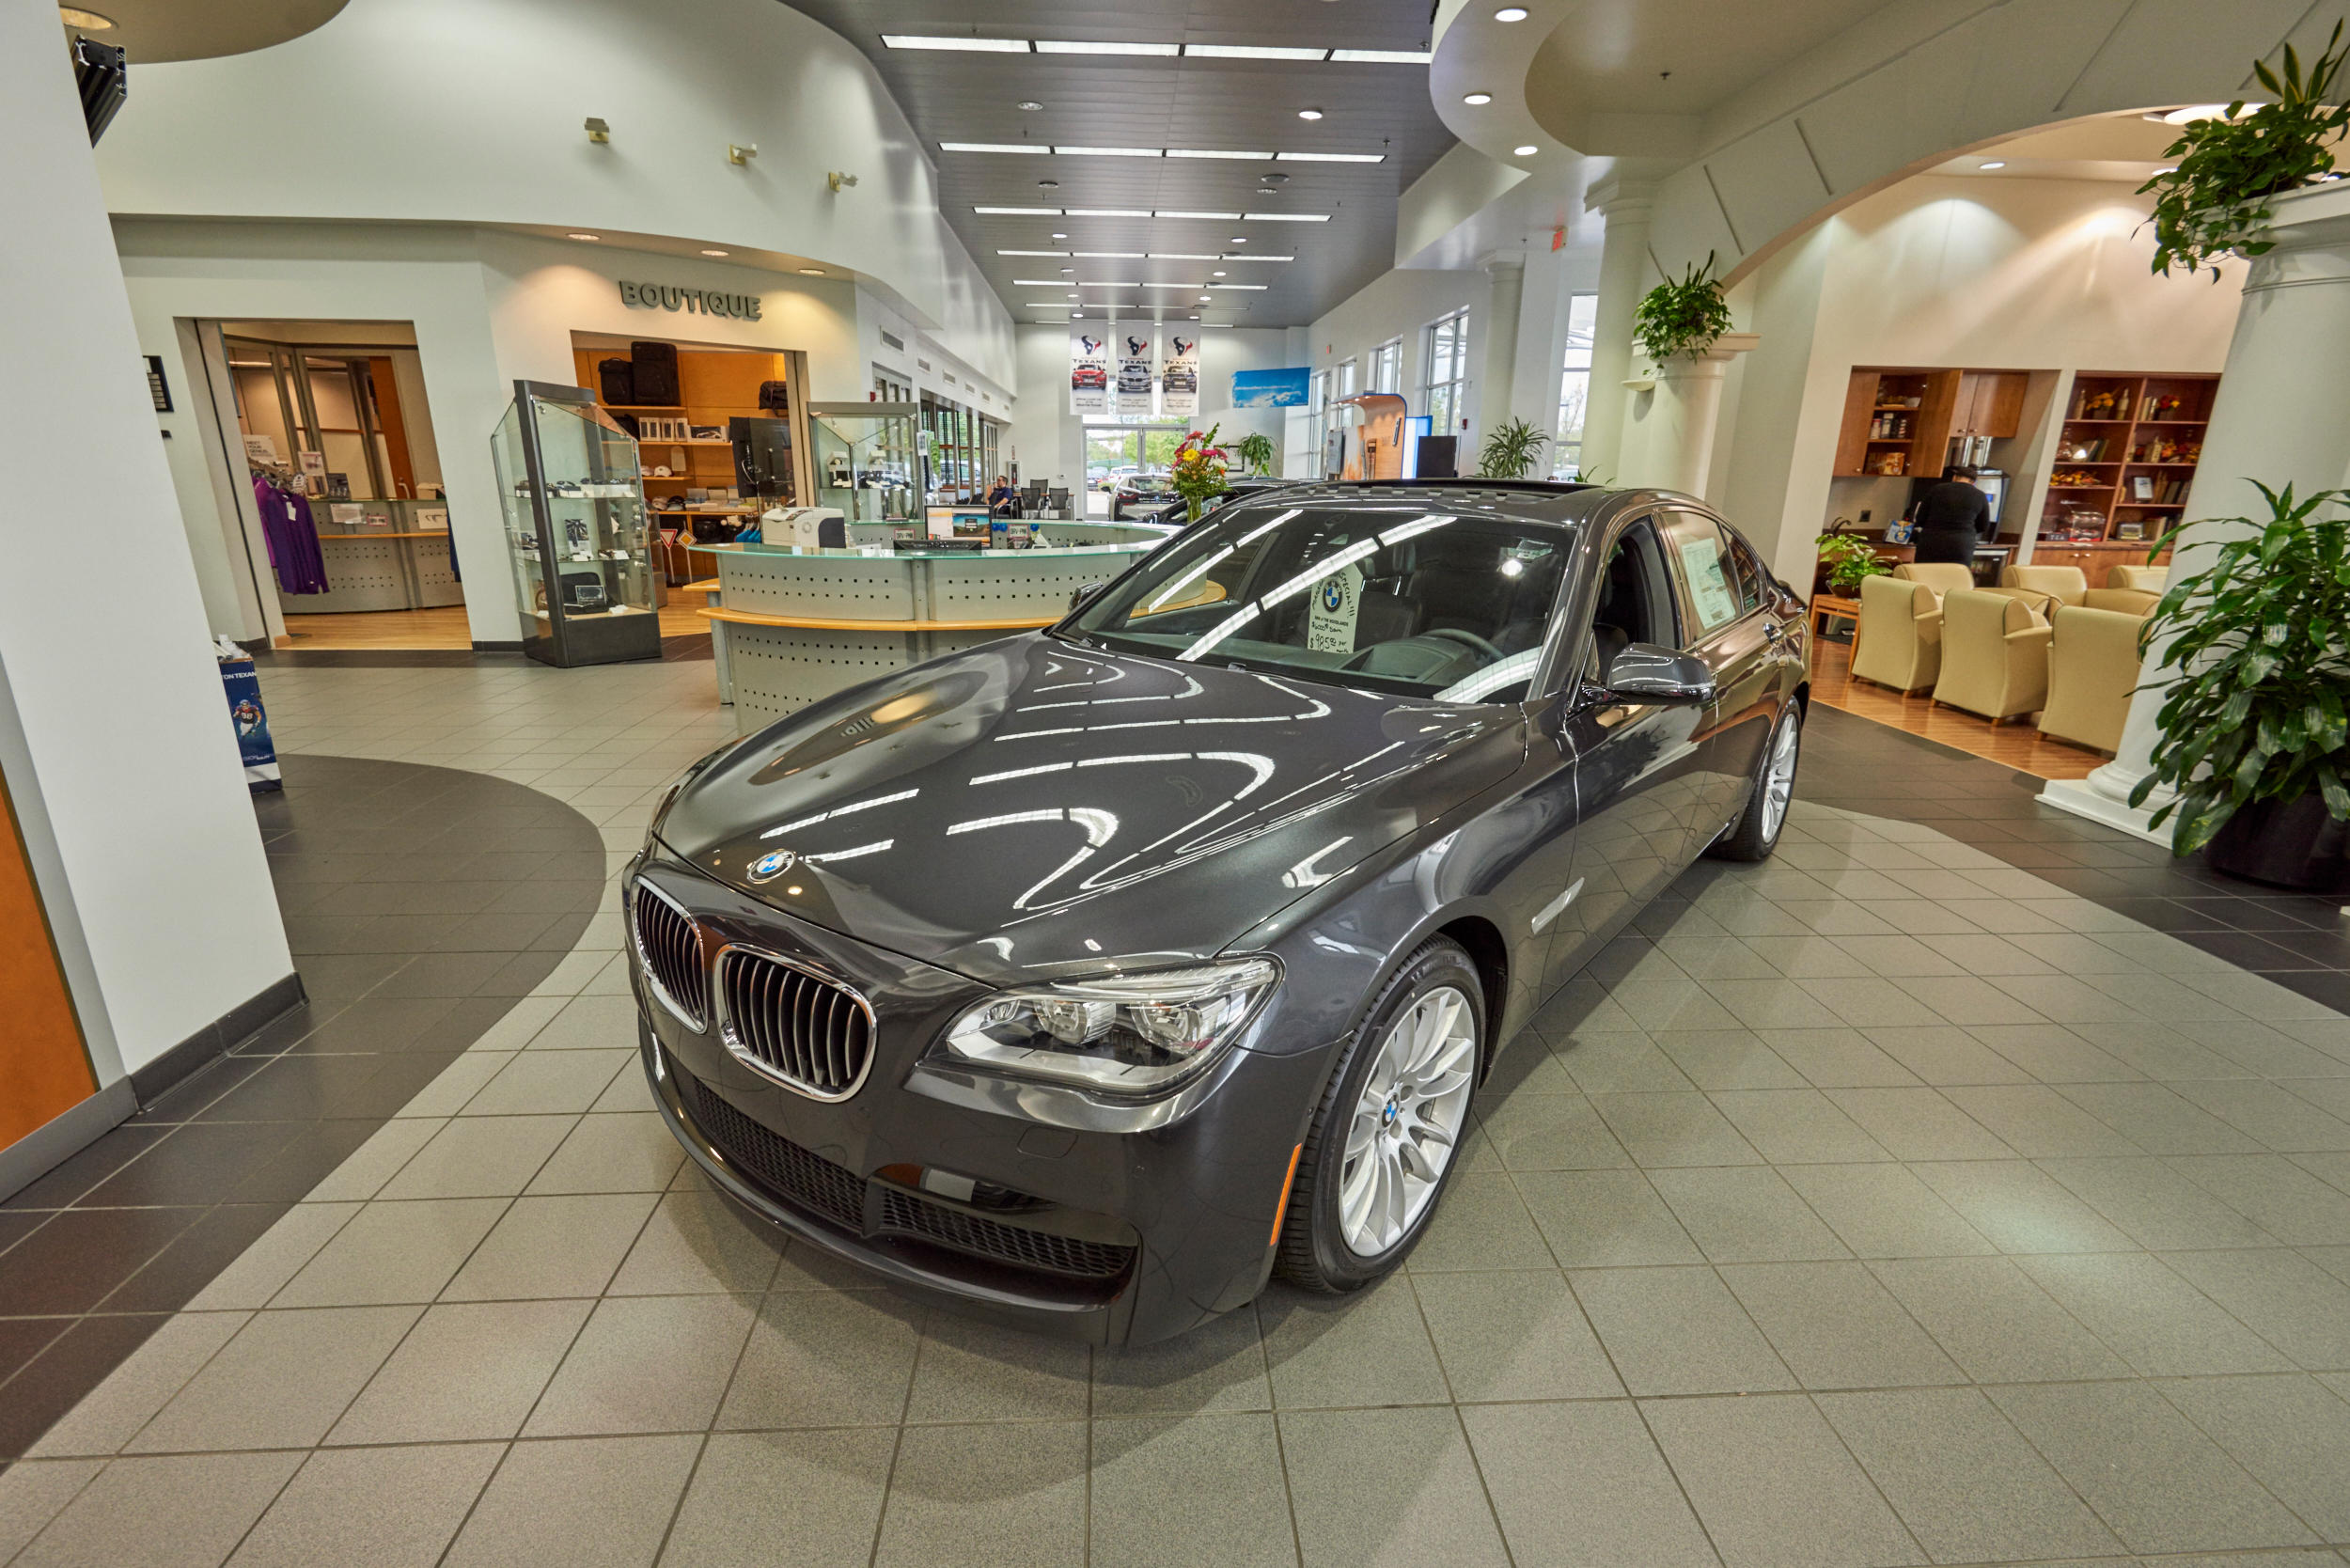 BMW of The Woodlands Interstate 45 S Conroe TX YP